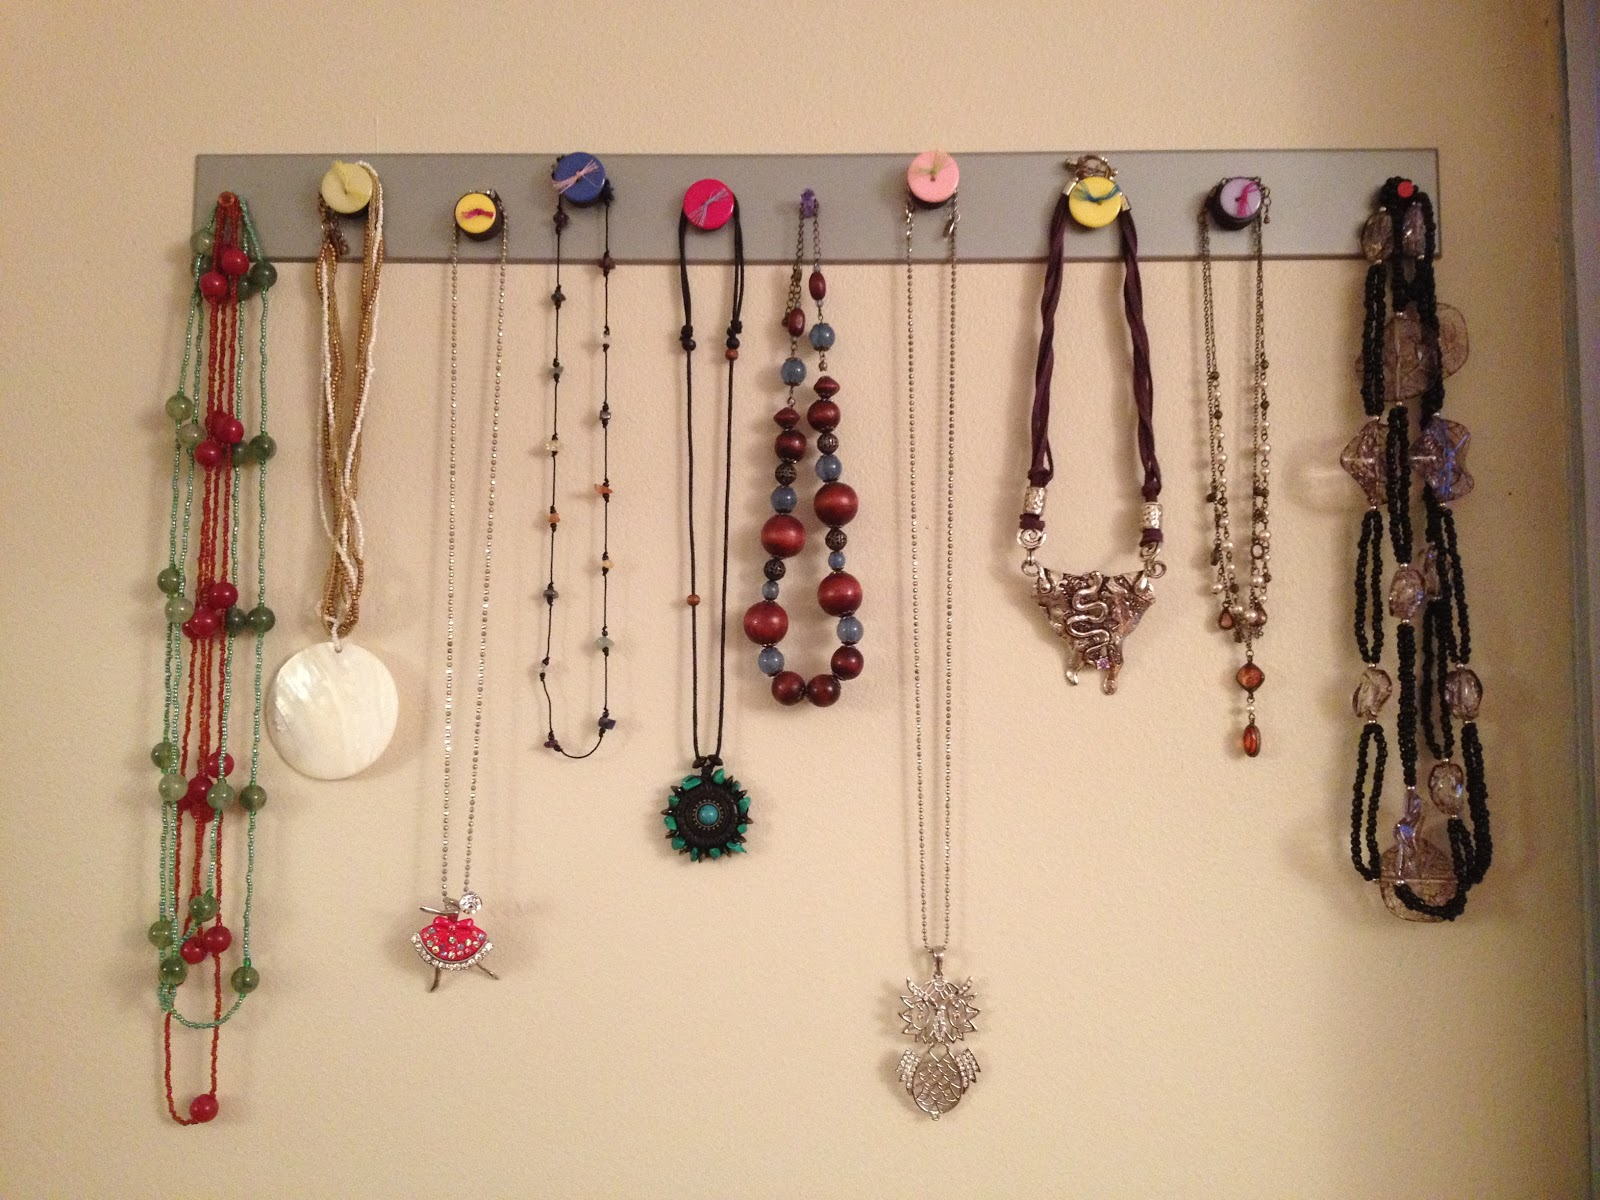 This Creative Outlet DIY Magnetic Necklace Jewelry Holder